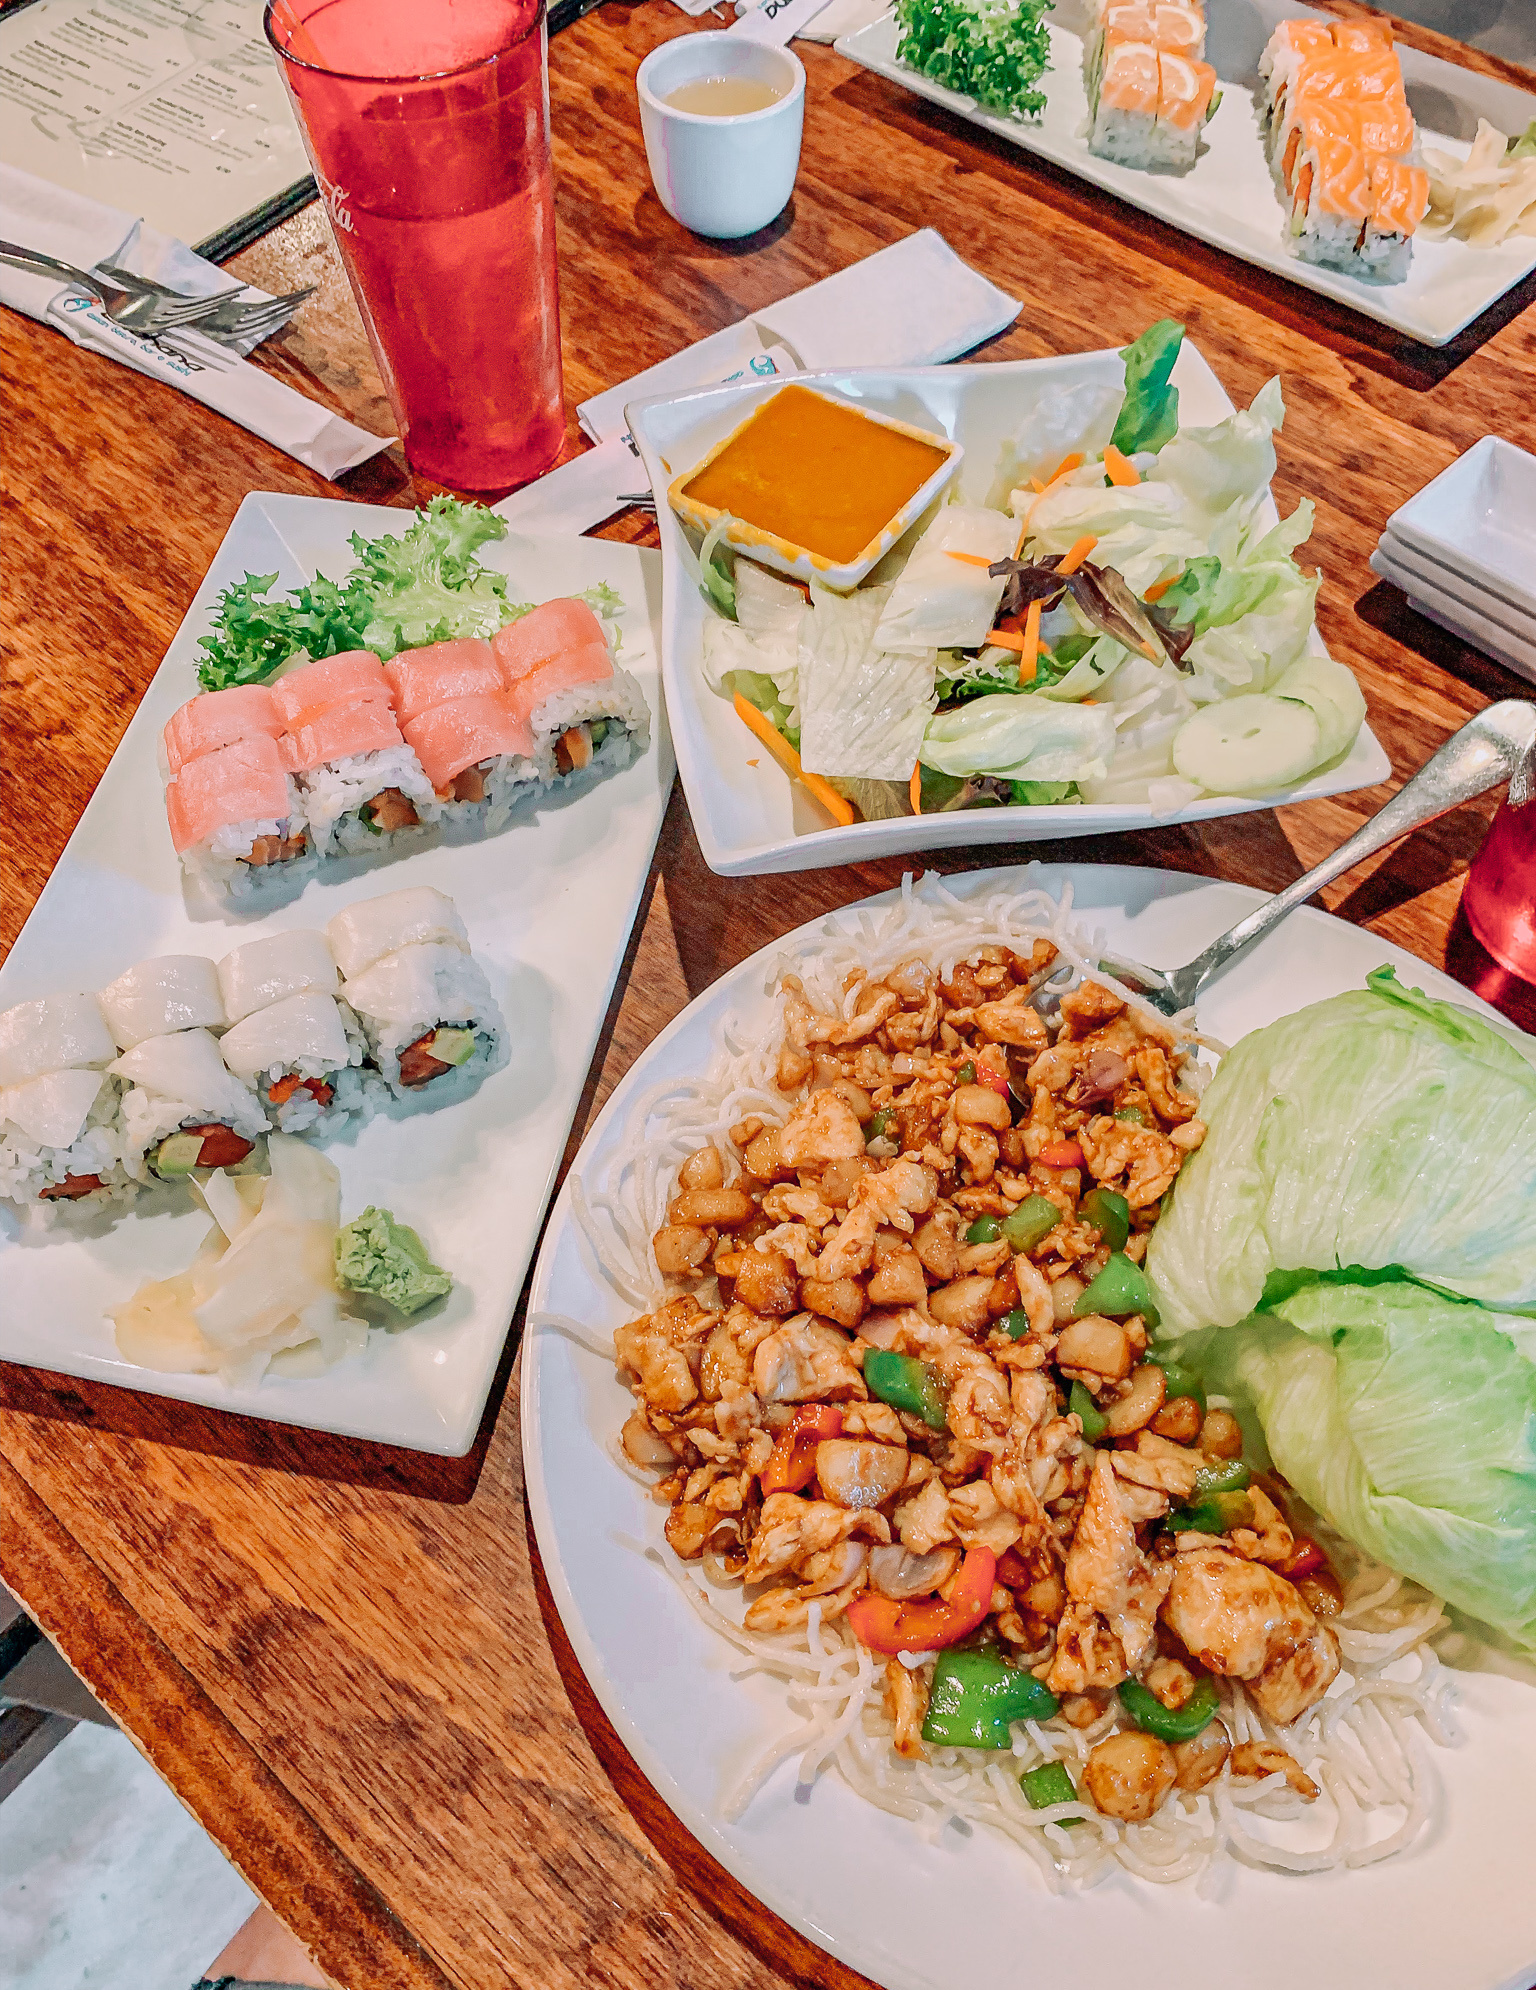 akahana, fort mill, chicken lettuce wraps, sushi, gluten free, dairy free, dining out, Charlotte nc movies and sushi date night